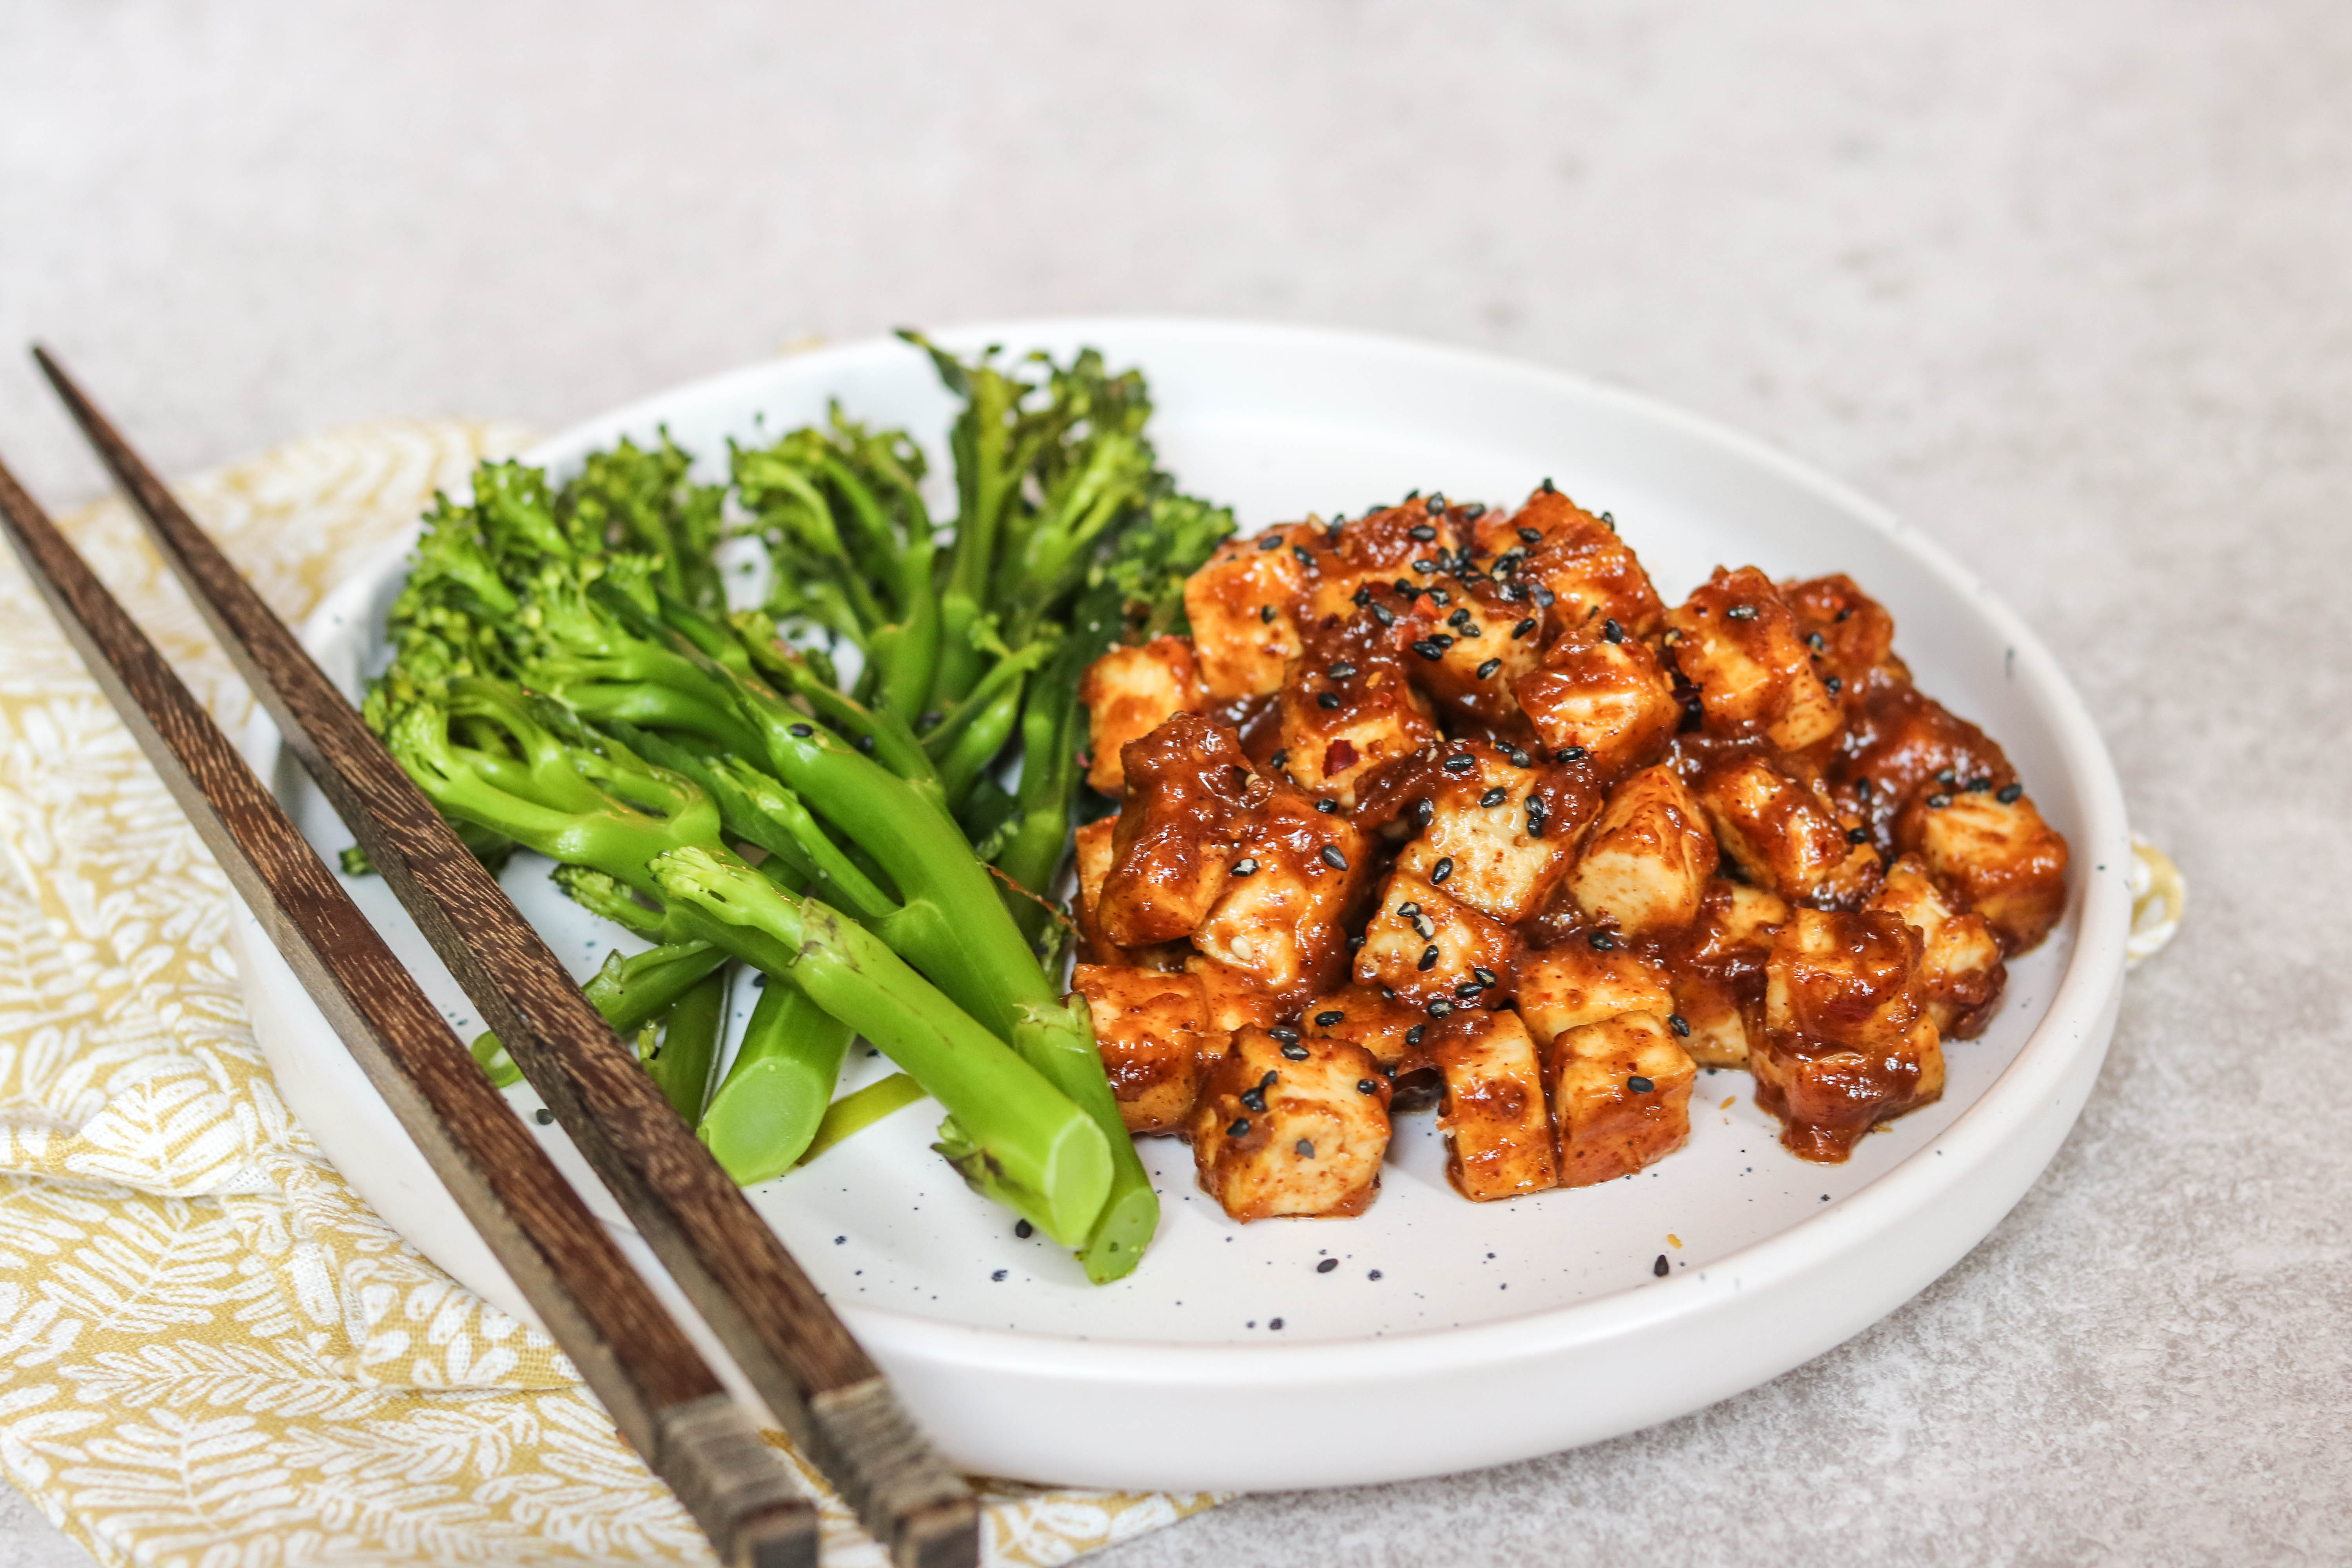 Vegetarian Recipes for Weight Loss - Tofu in Peanut Sauce